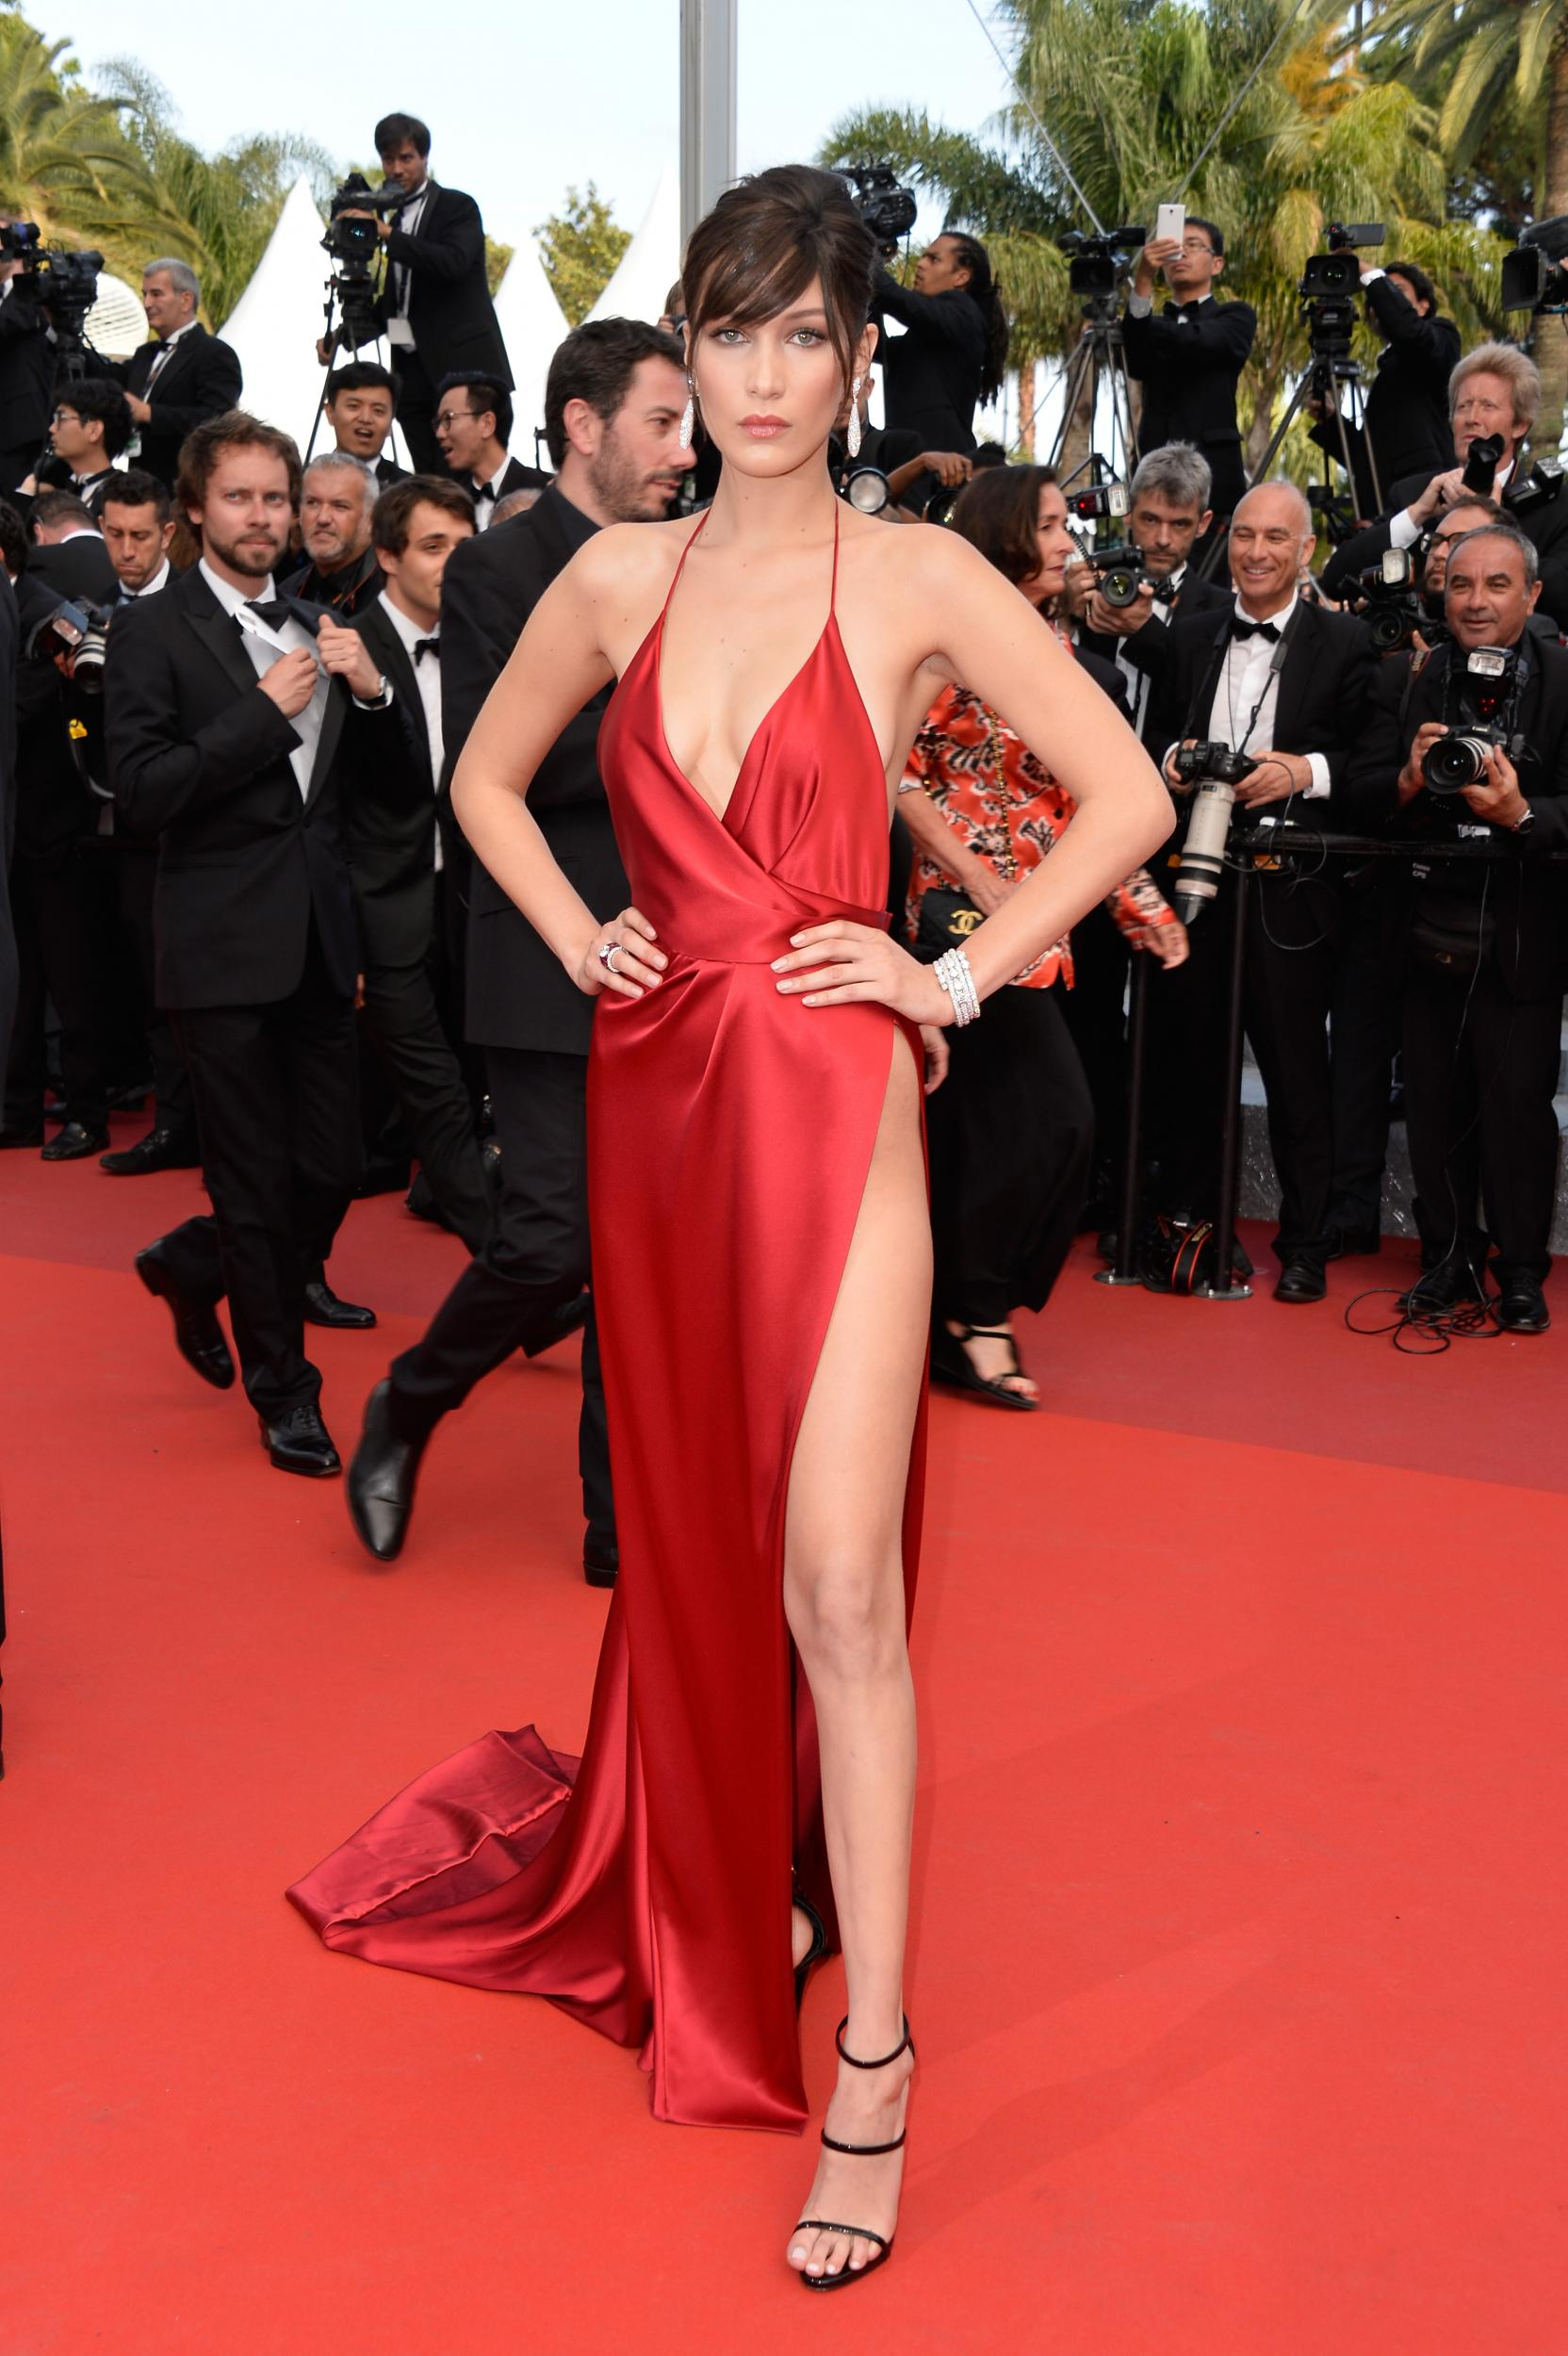 16 - Bella Hadid's Cannes red dress, Alexandra Gauthiere, 2016